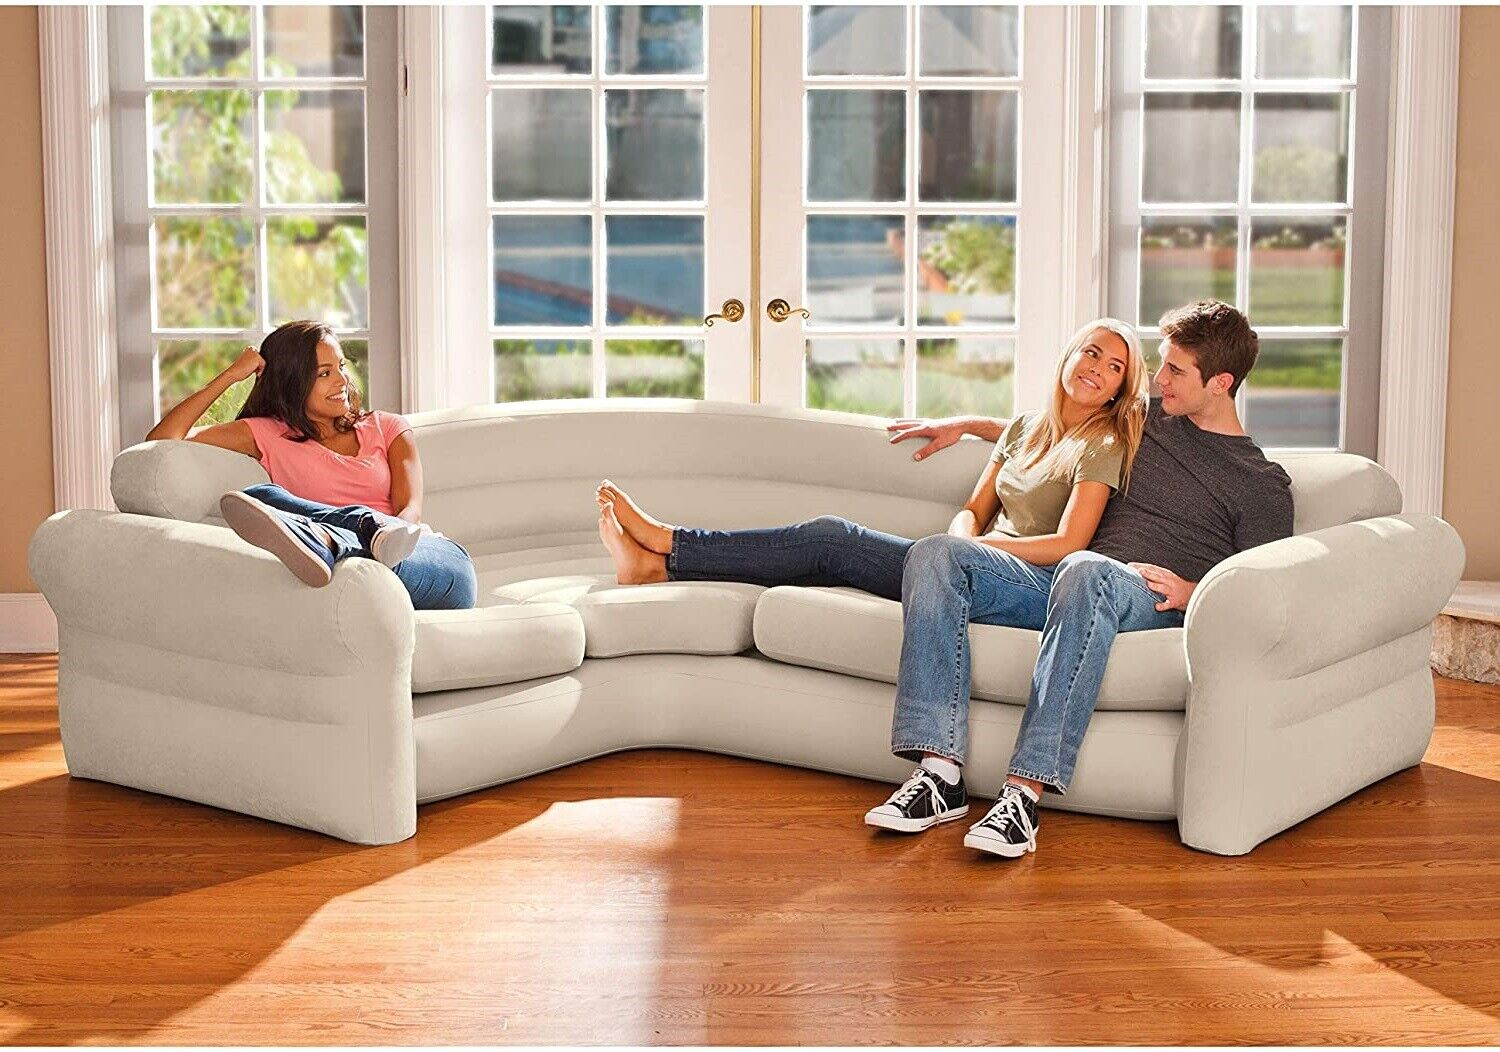 Ultra Comfort Corner Sofa Sleeper Couch Blow Up Futon Sectional Bed Living Room